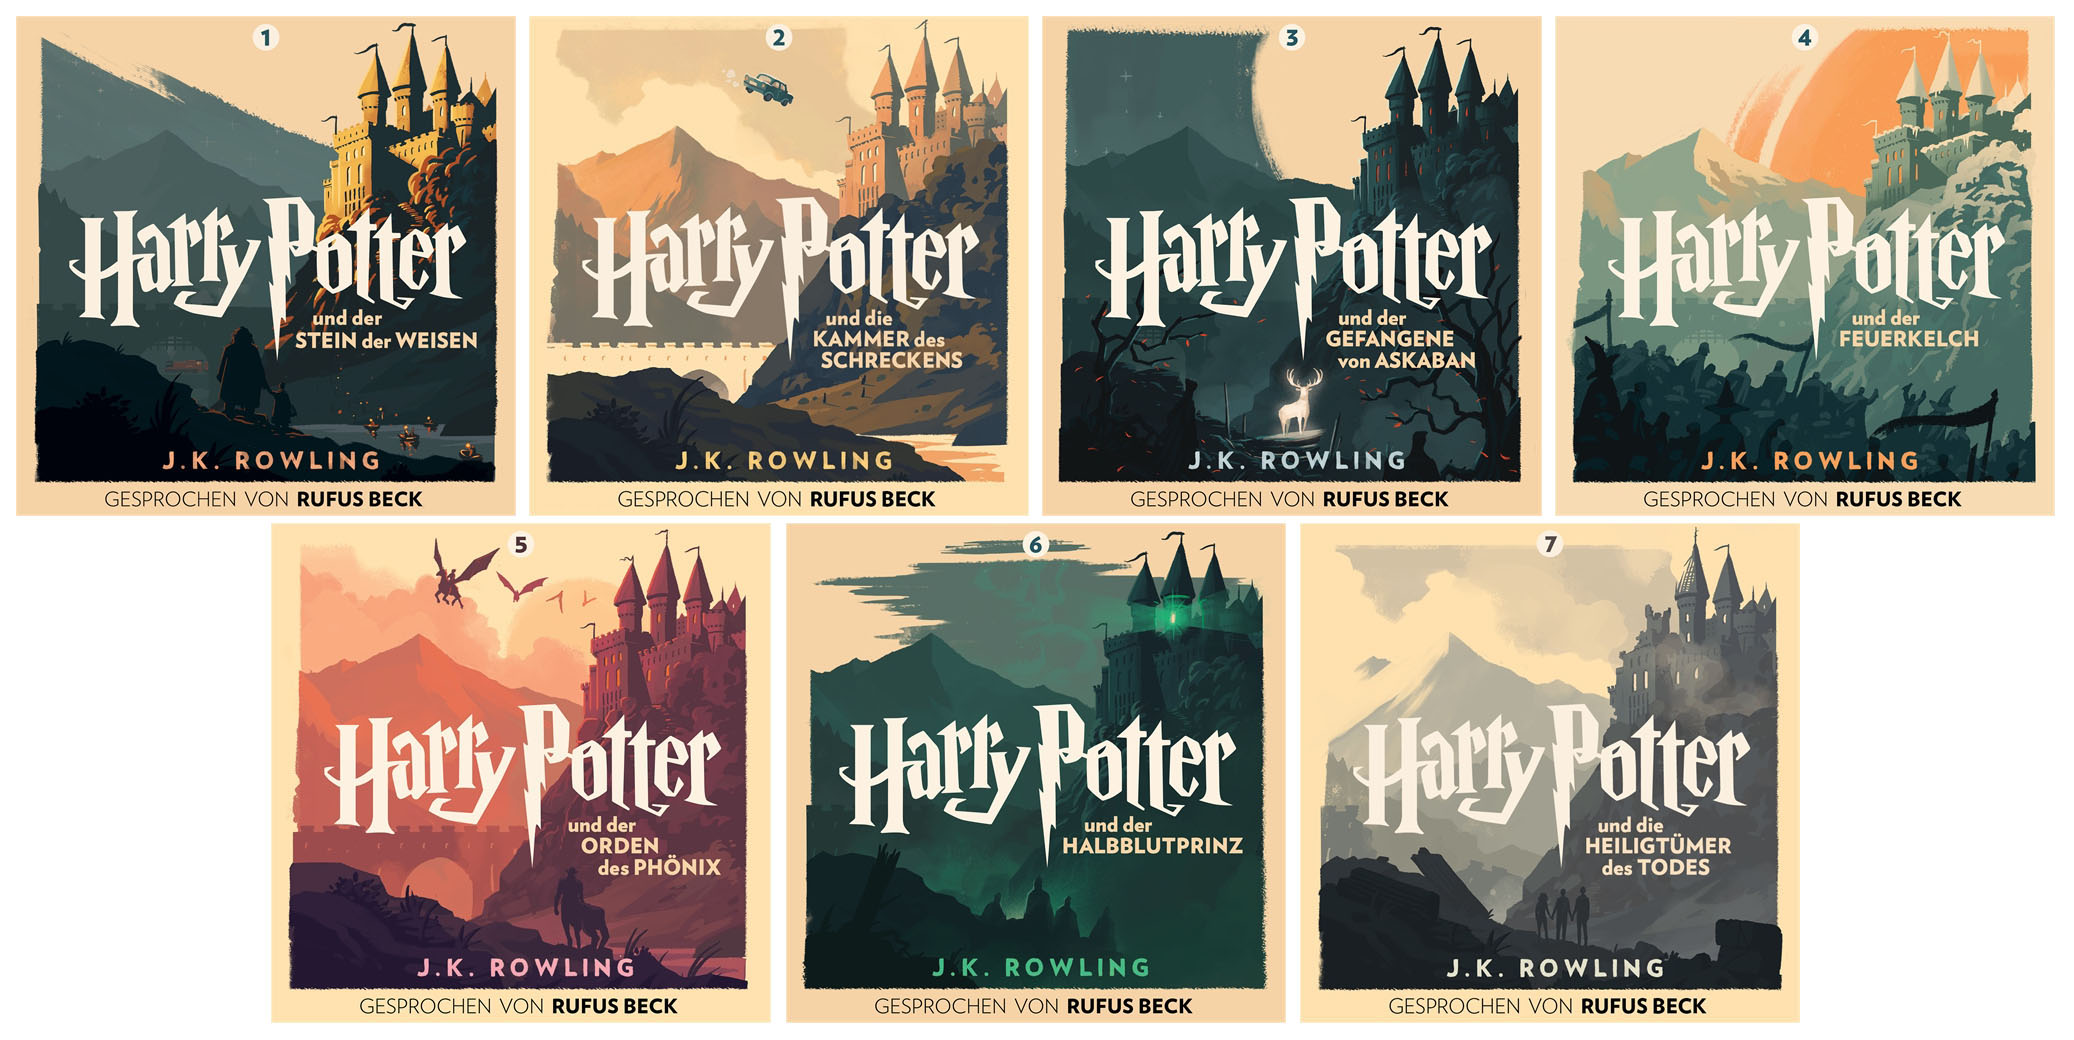 Olly Moss Artwork Revealed For The German Harry Potter Audiobook Series Pottermore Publishing